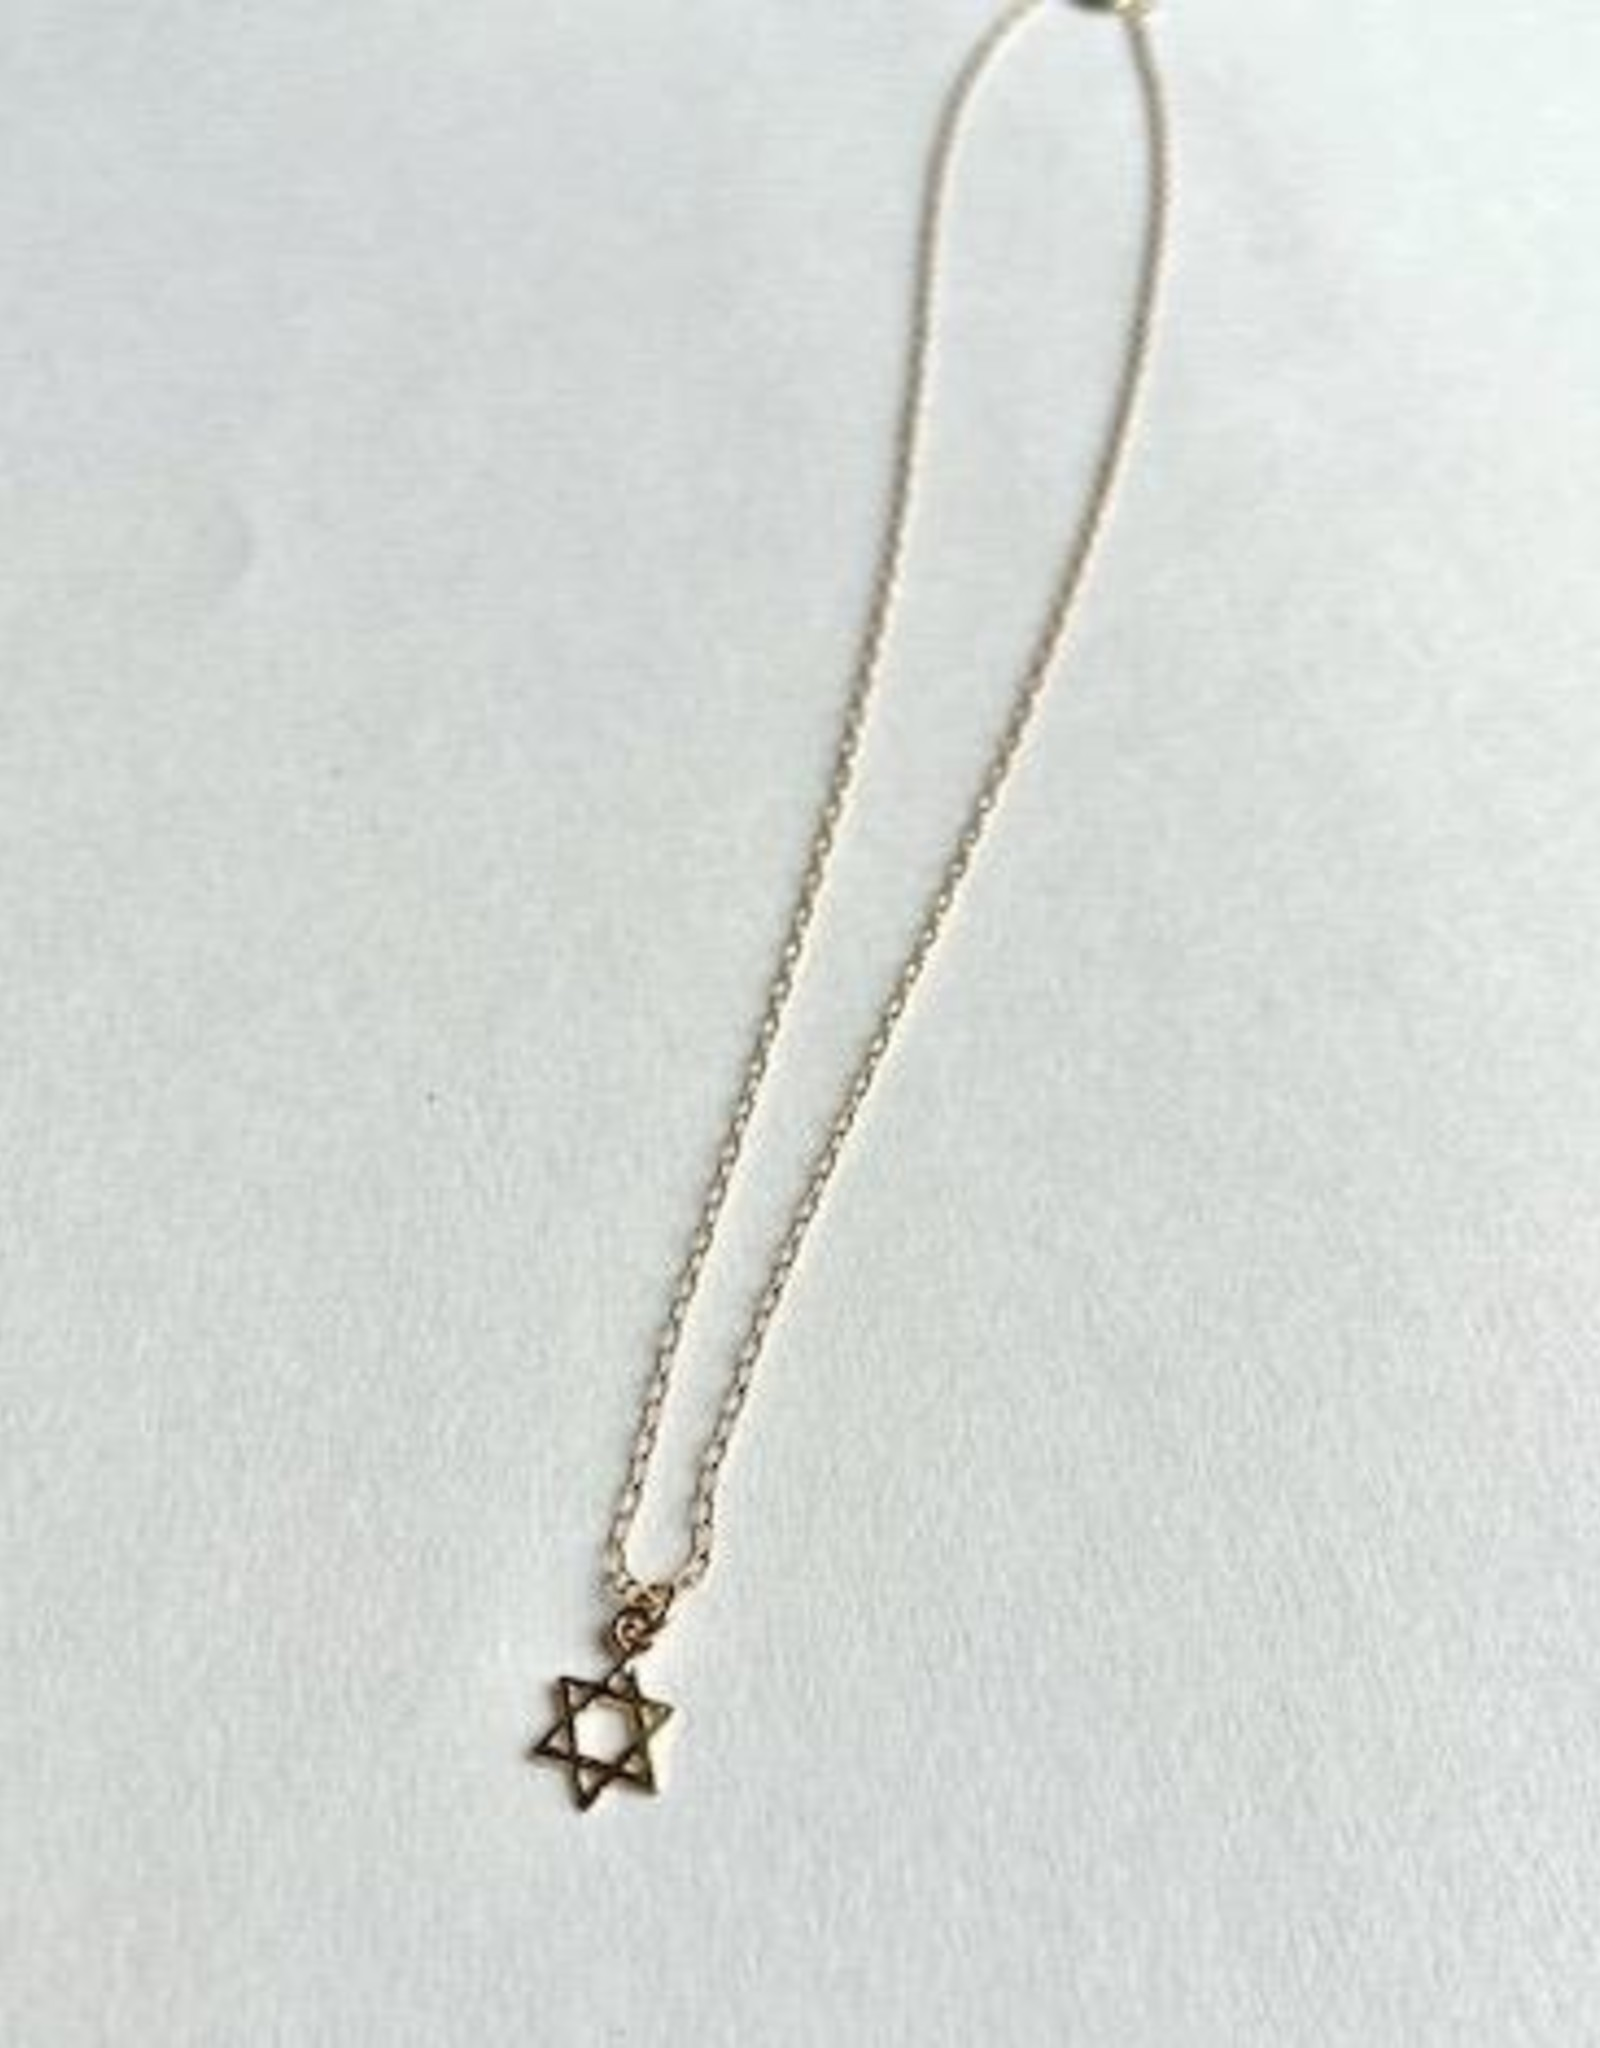 14k Goldfill Necklace with Tiny Star of David Pendant